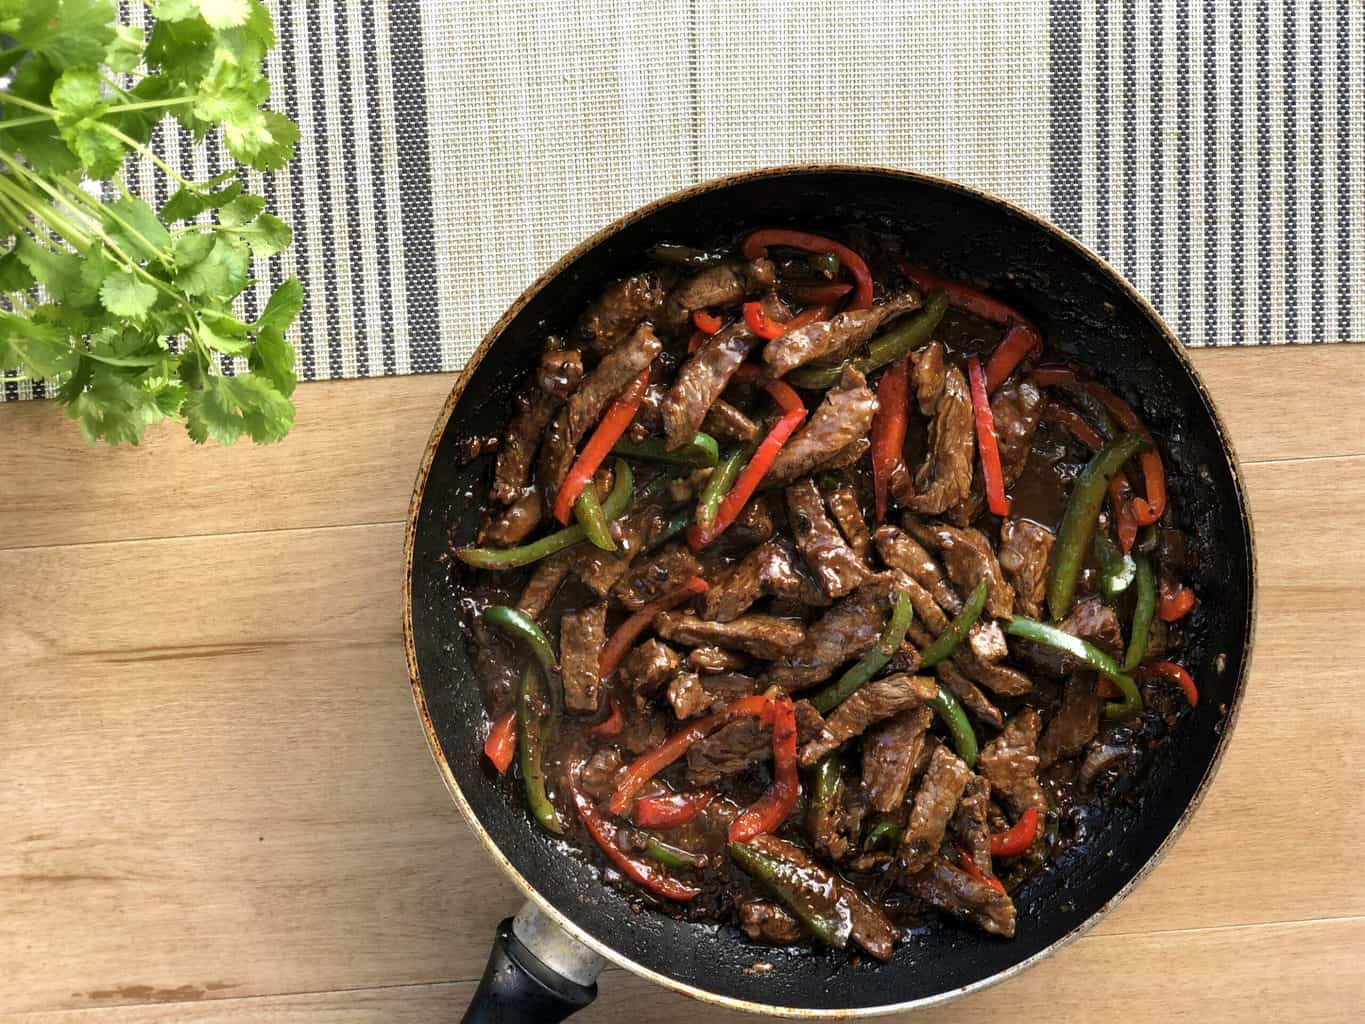 Simple Family Beef Stir Fry